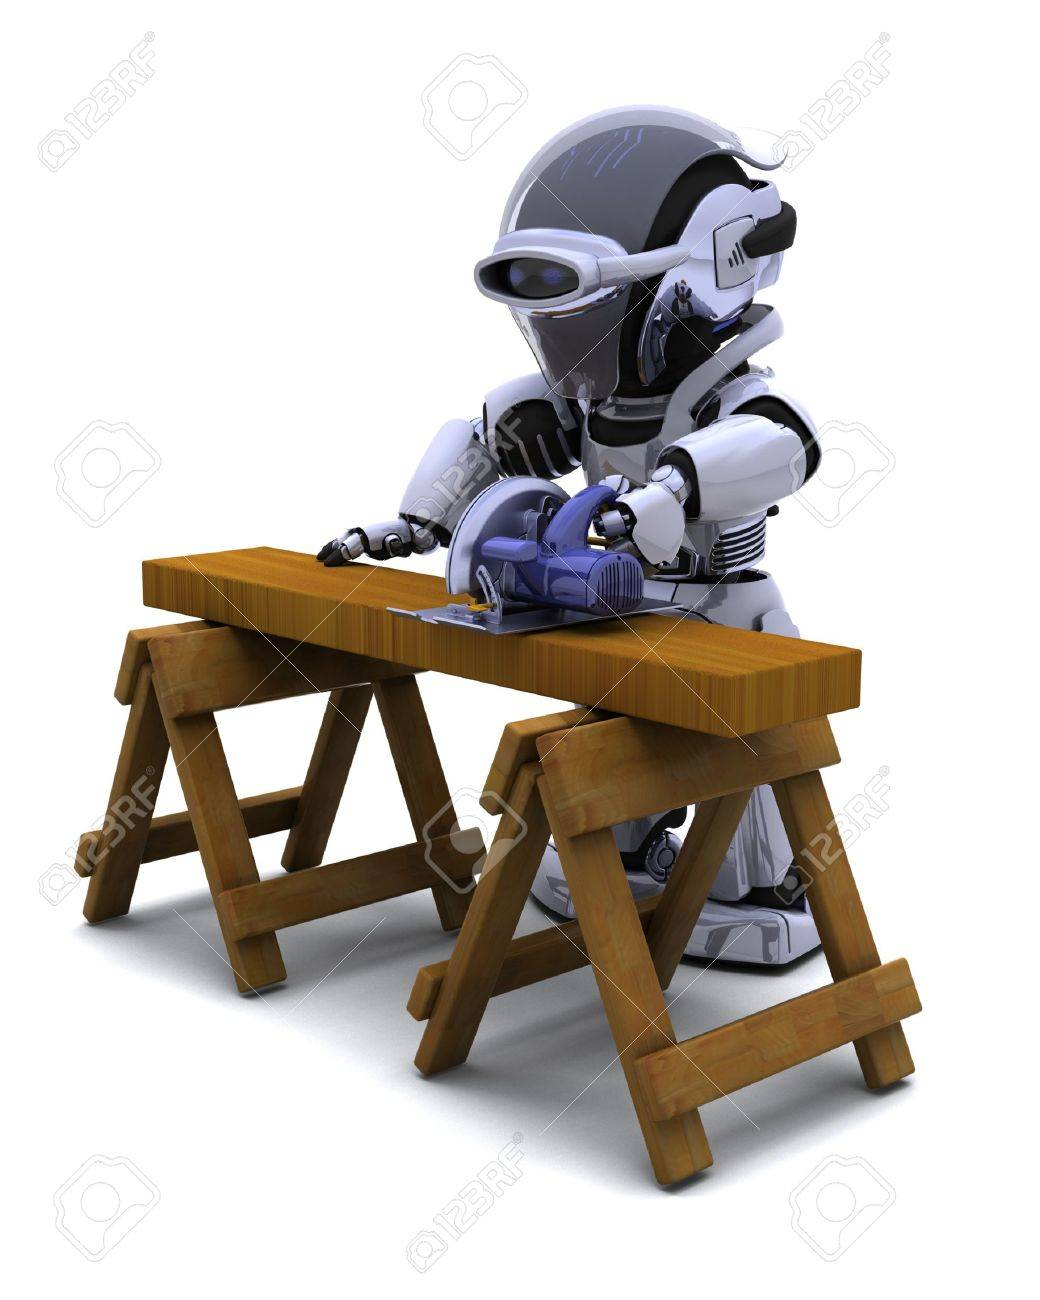 3D render of robot with power saw cutting wood Stock Photo - 7862791